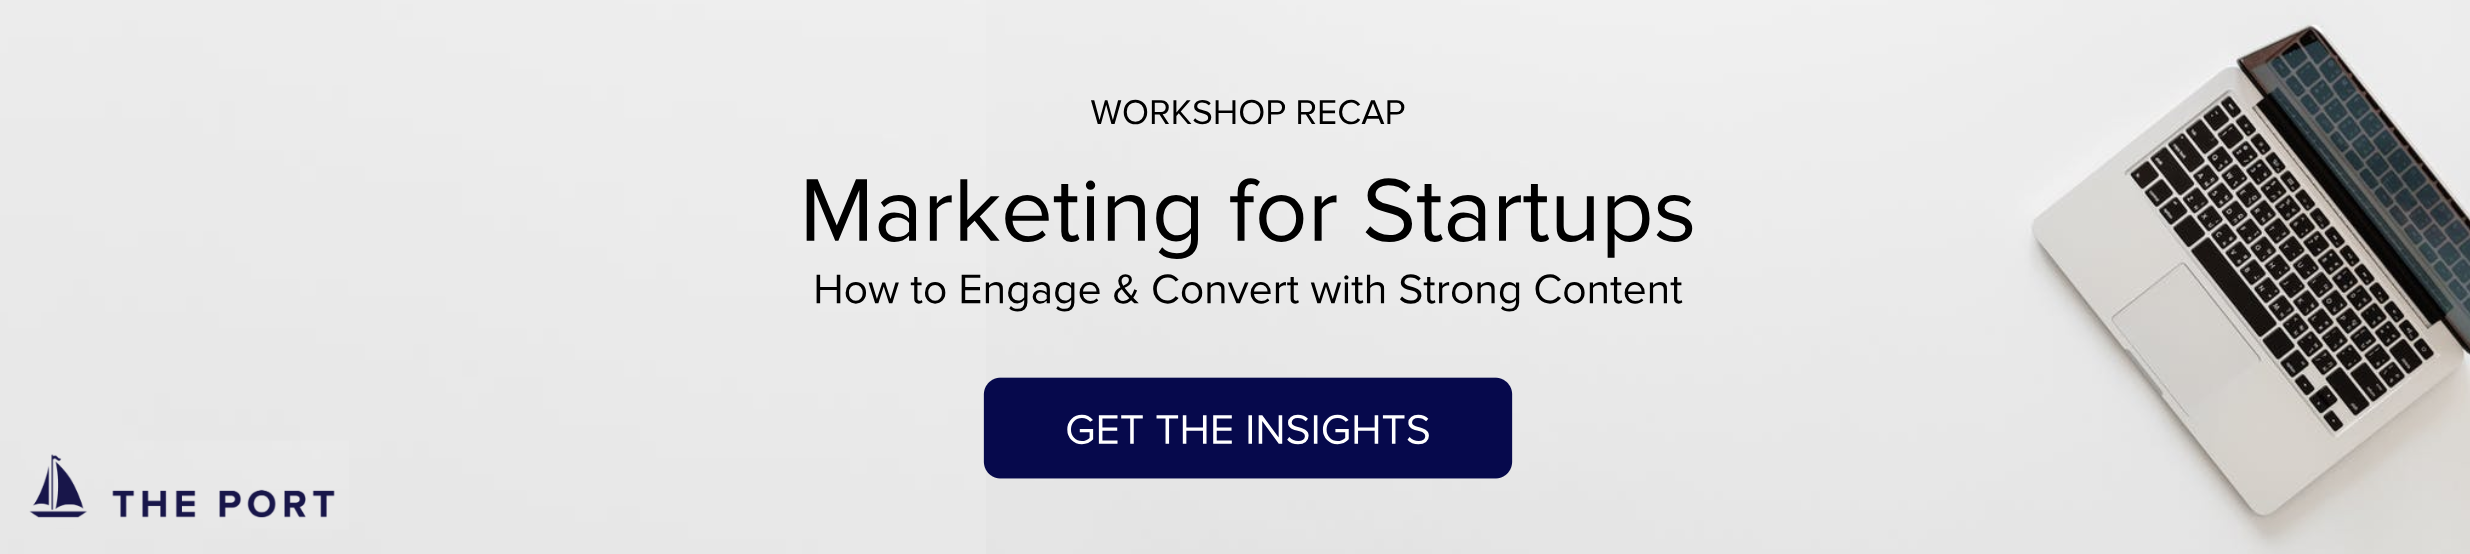 marketing-for-startups-event-CTA.png